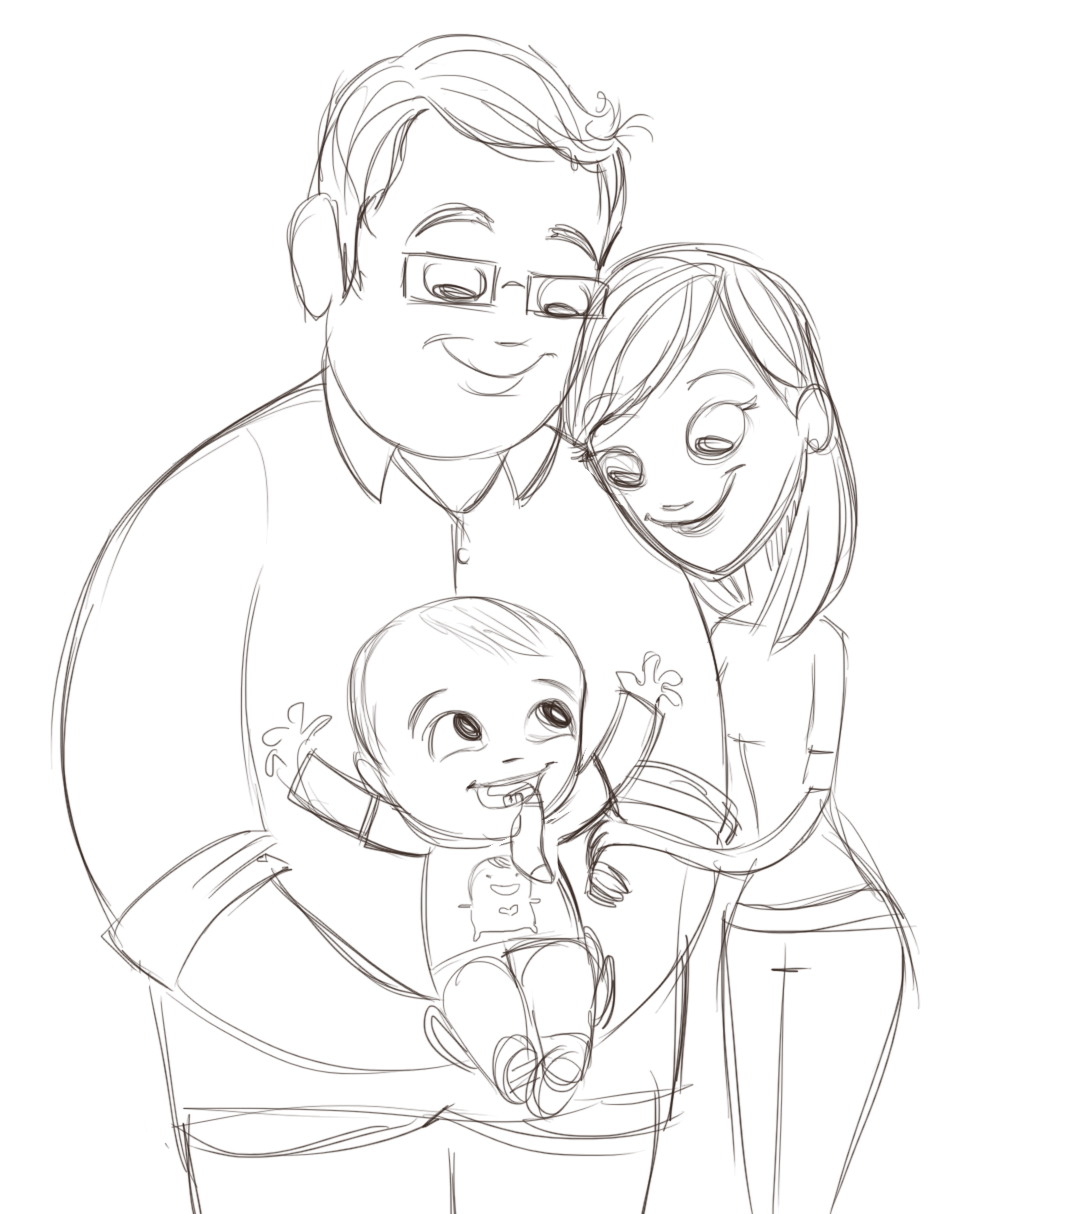 Penguin Stands Alone: Family Sketch